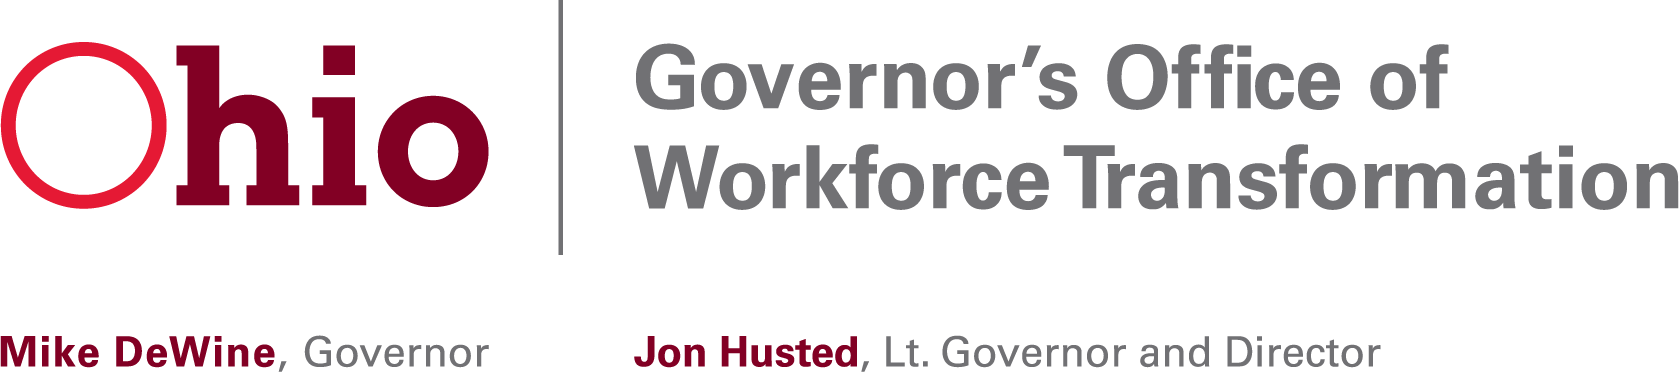 Ohio Governor's Office of Workforce Transformation